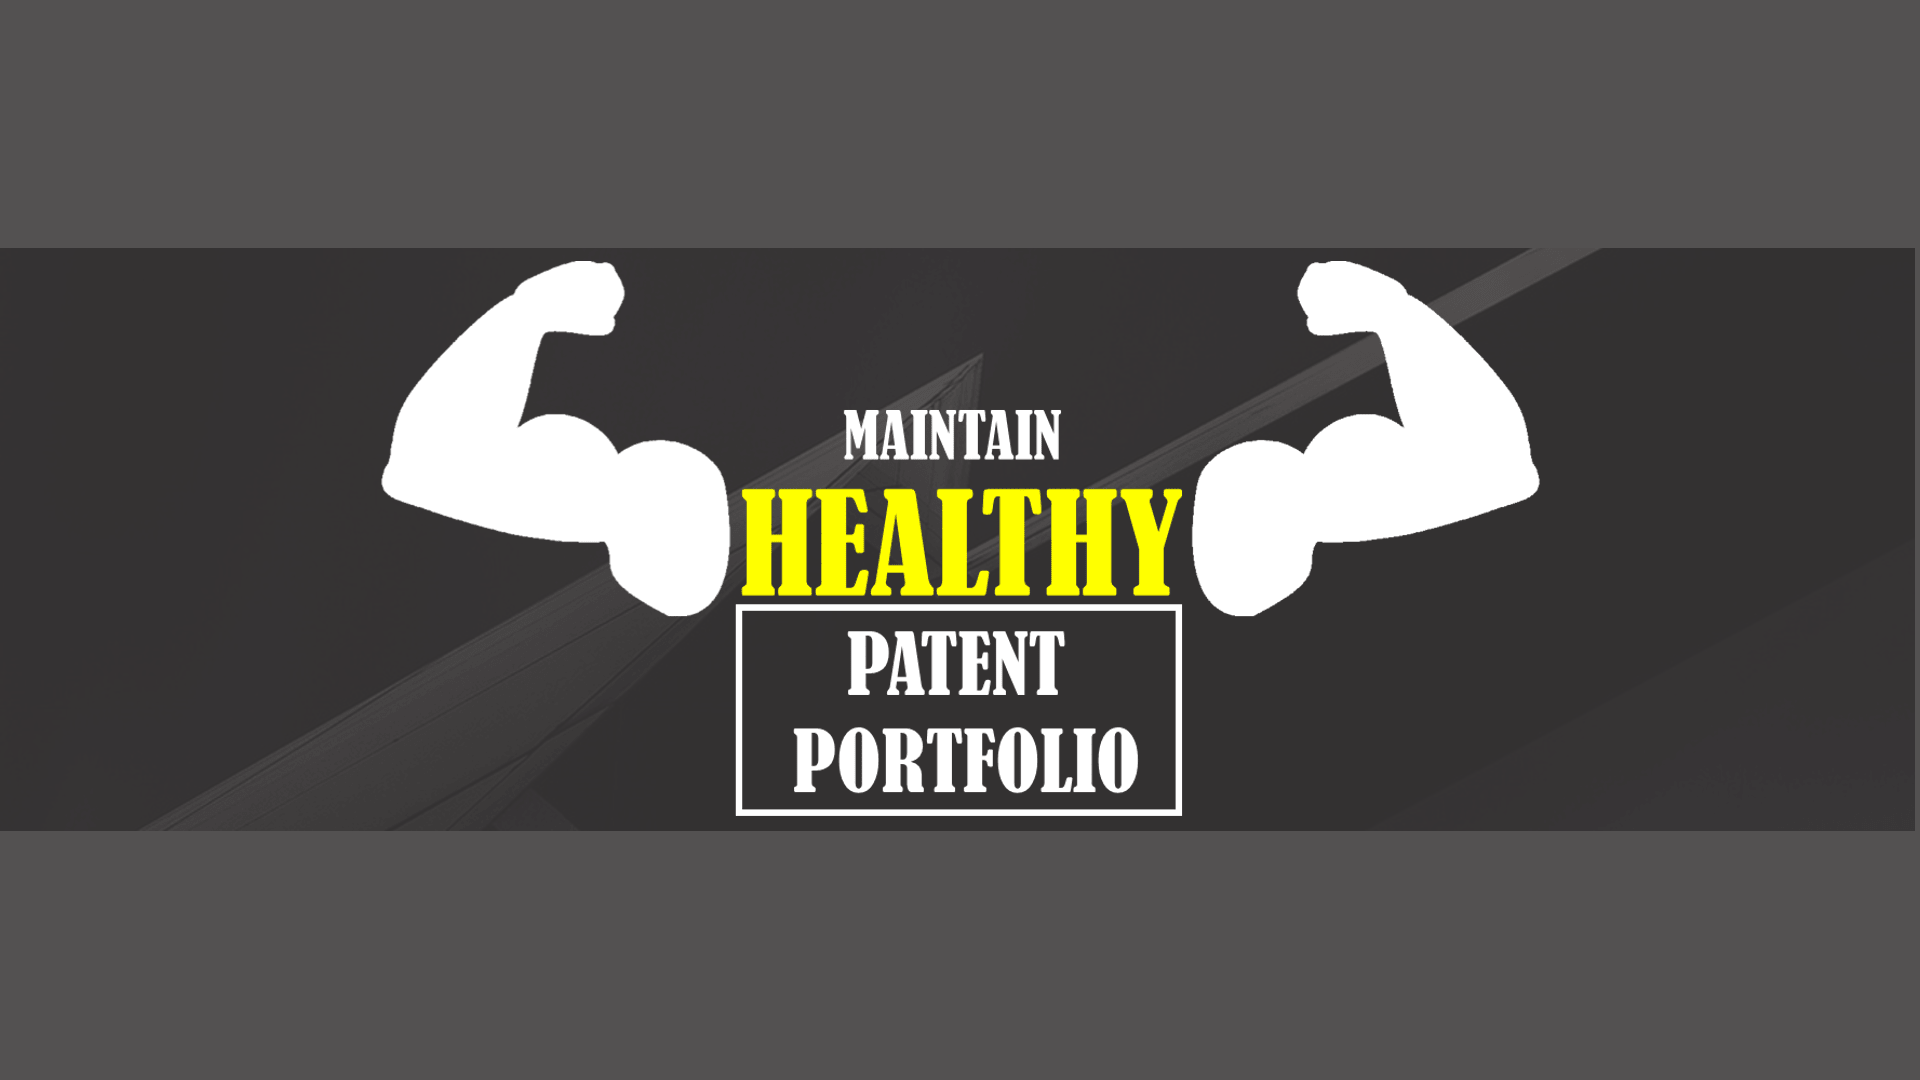 Maintain healthy portfolio